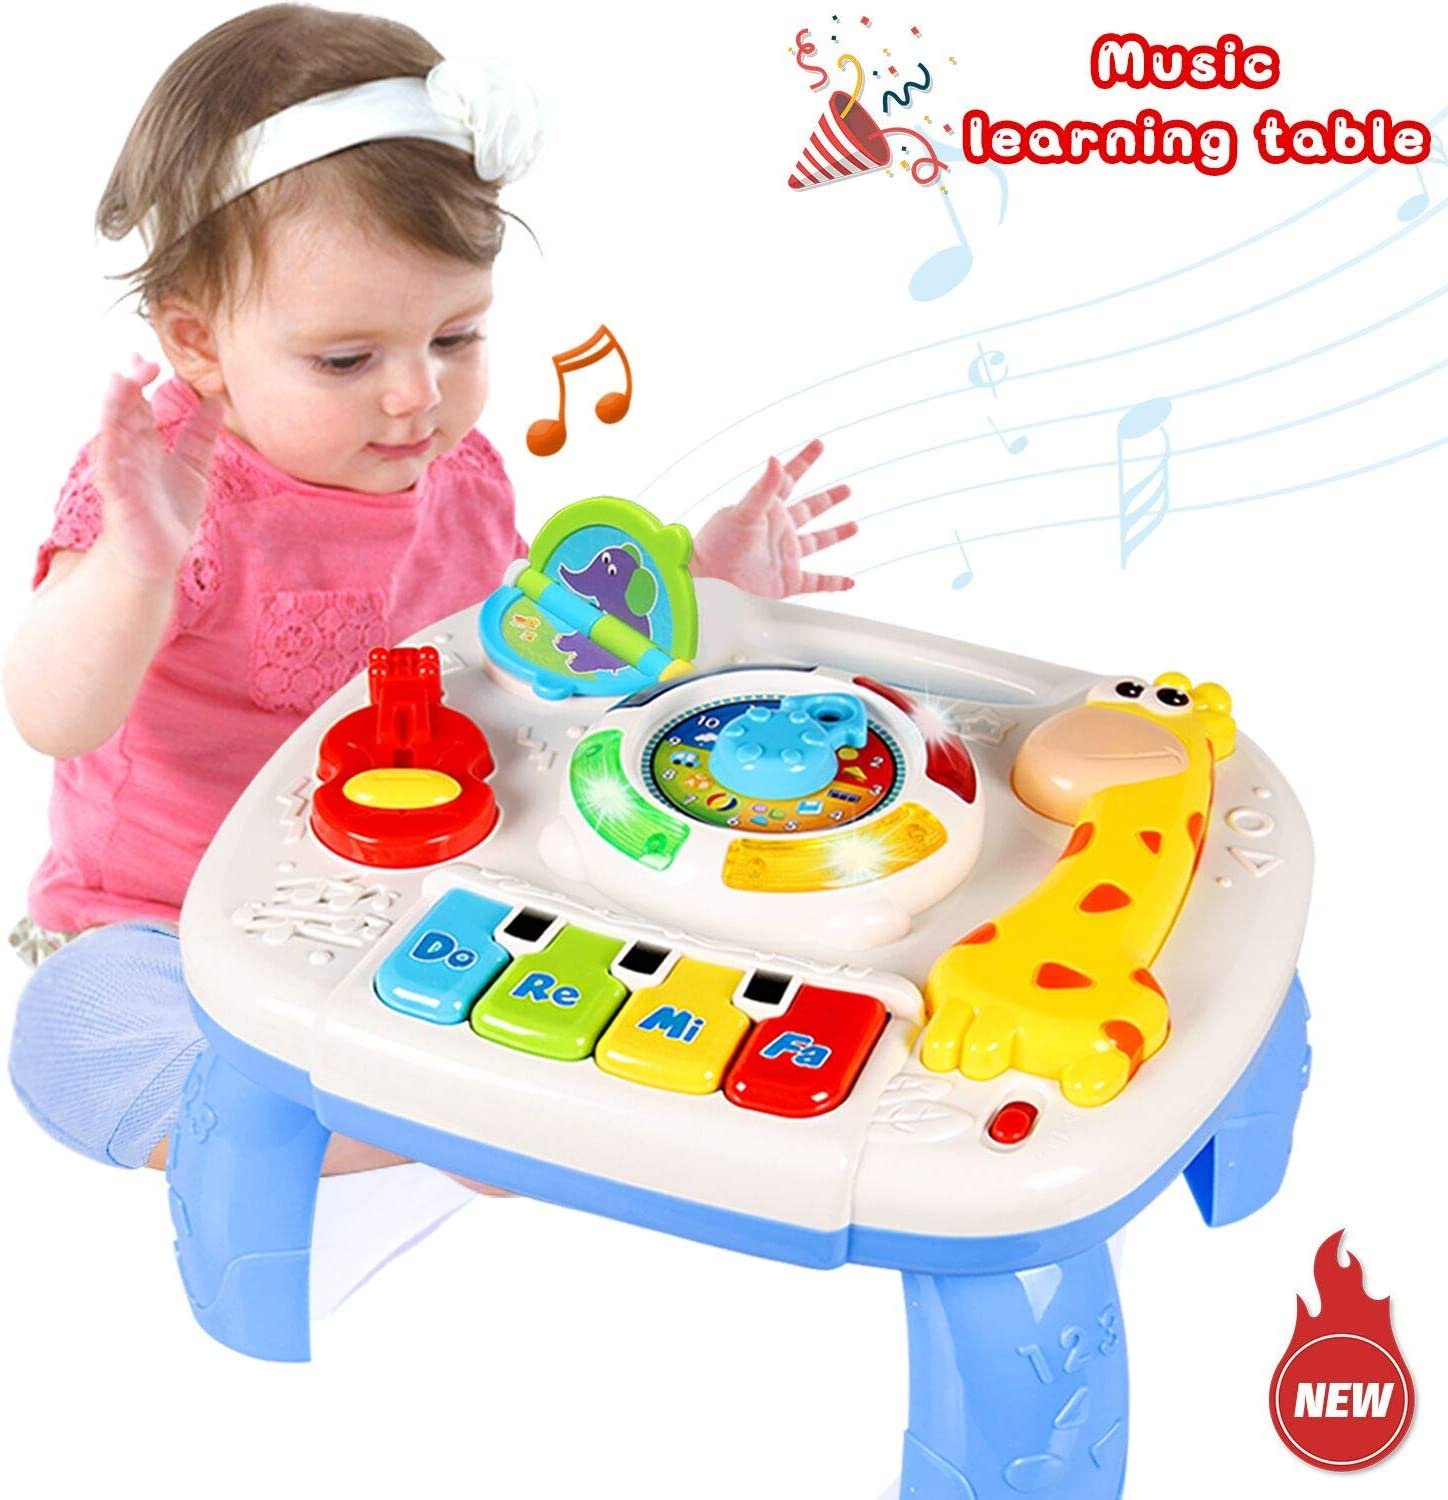 Amazon Com Homofy Baby Toys Musical Learning Table 6 Months Up Early Education Activity Center Multiple Modes Game Kids Toddler Boys Girls Toys For 1 2 3 Years Old Best Gifts Toys Games